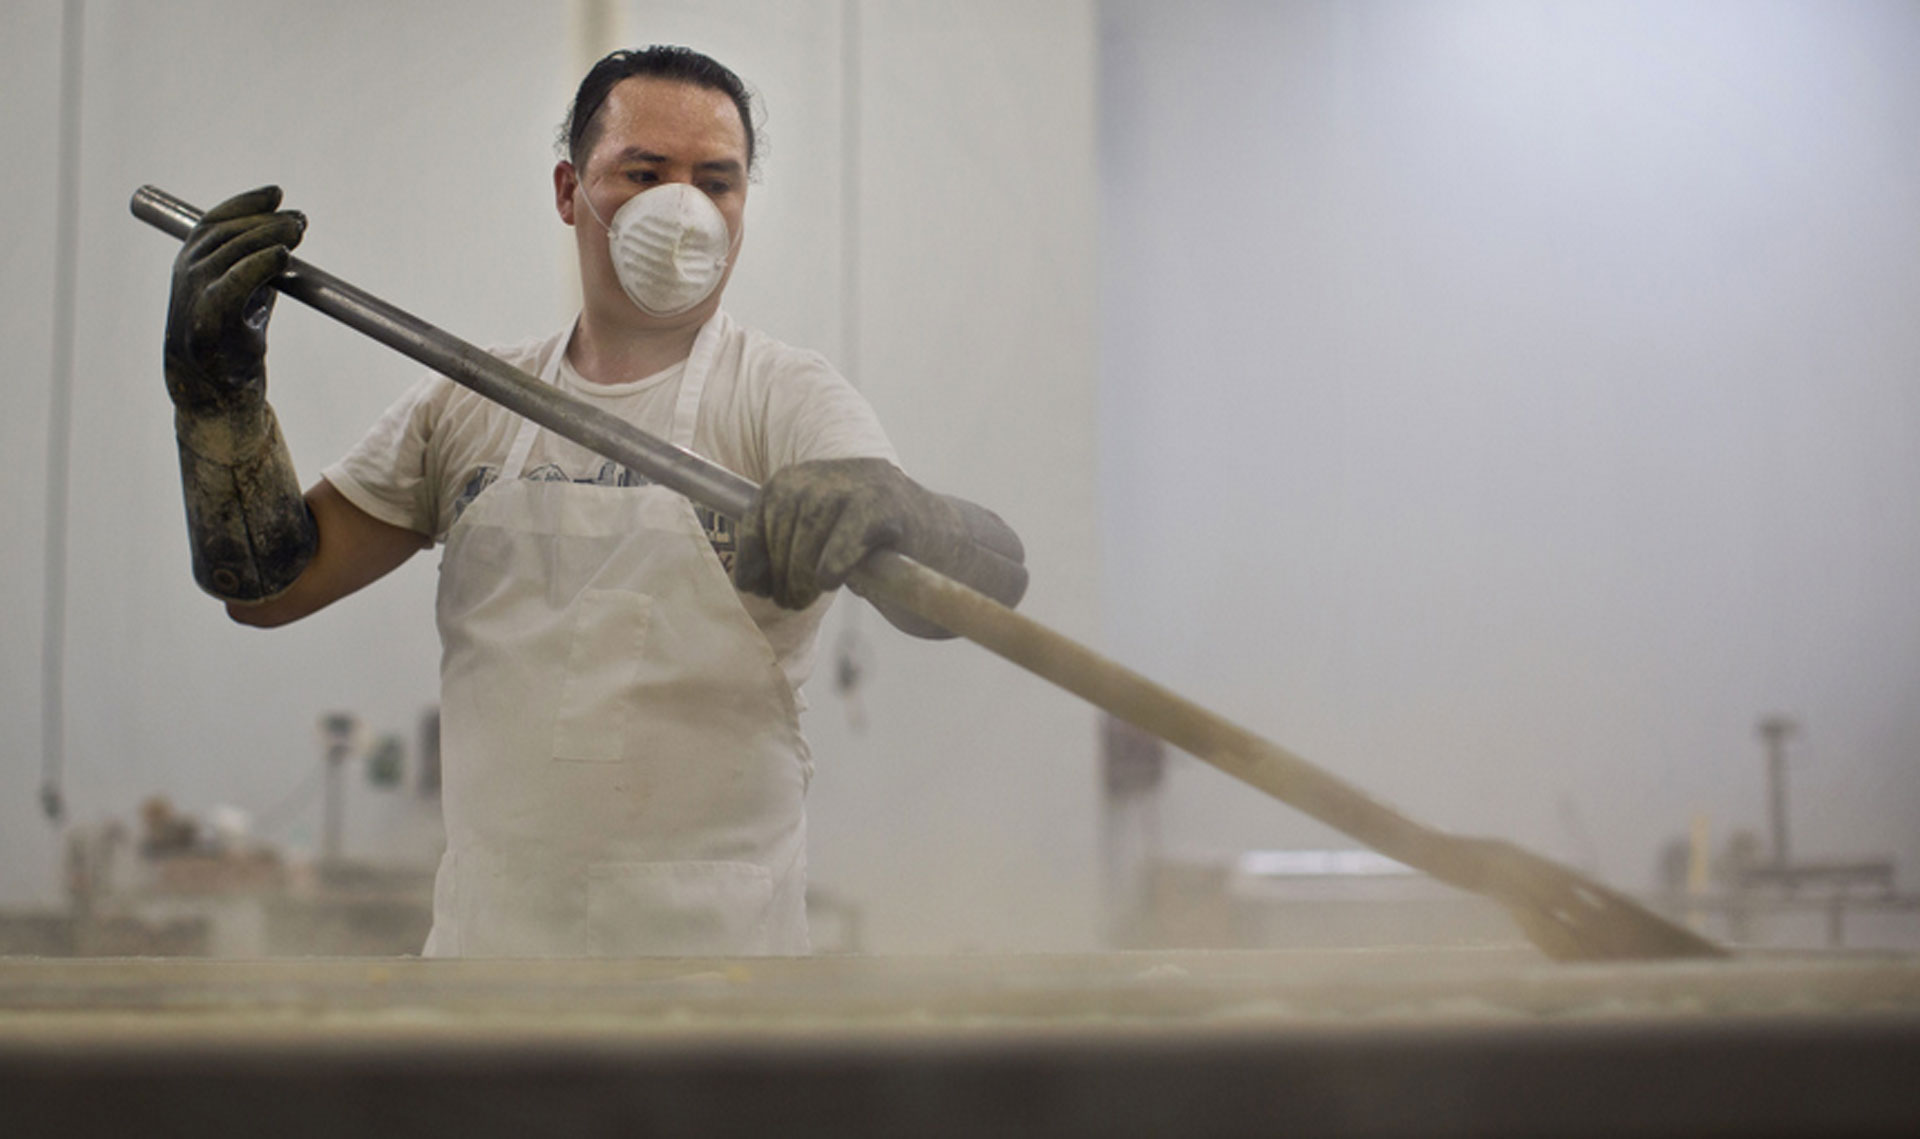 Anibal Calderon cooks yellow corn for tortillas at La Amapola Inc. in Santa Fe Springs on Monday, June 15, 2015. Though La Amapola Inc. can't save water in the cooking process, the company is using less water when it comes to cleaning their facilities.